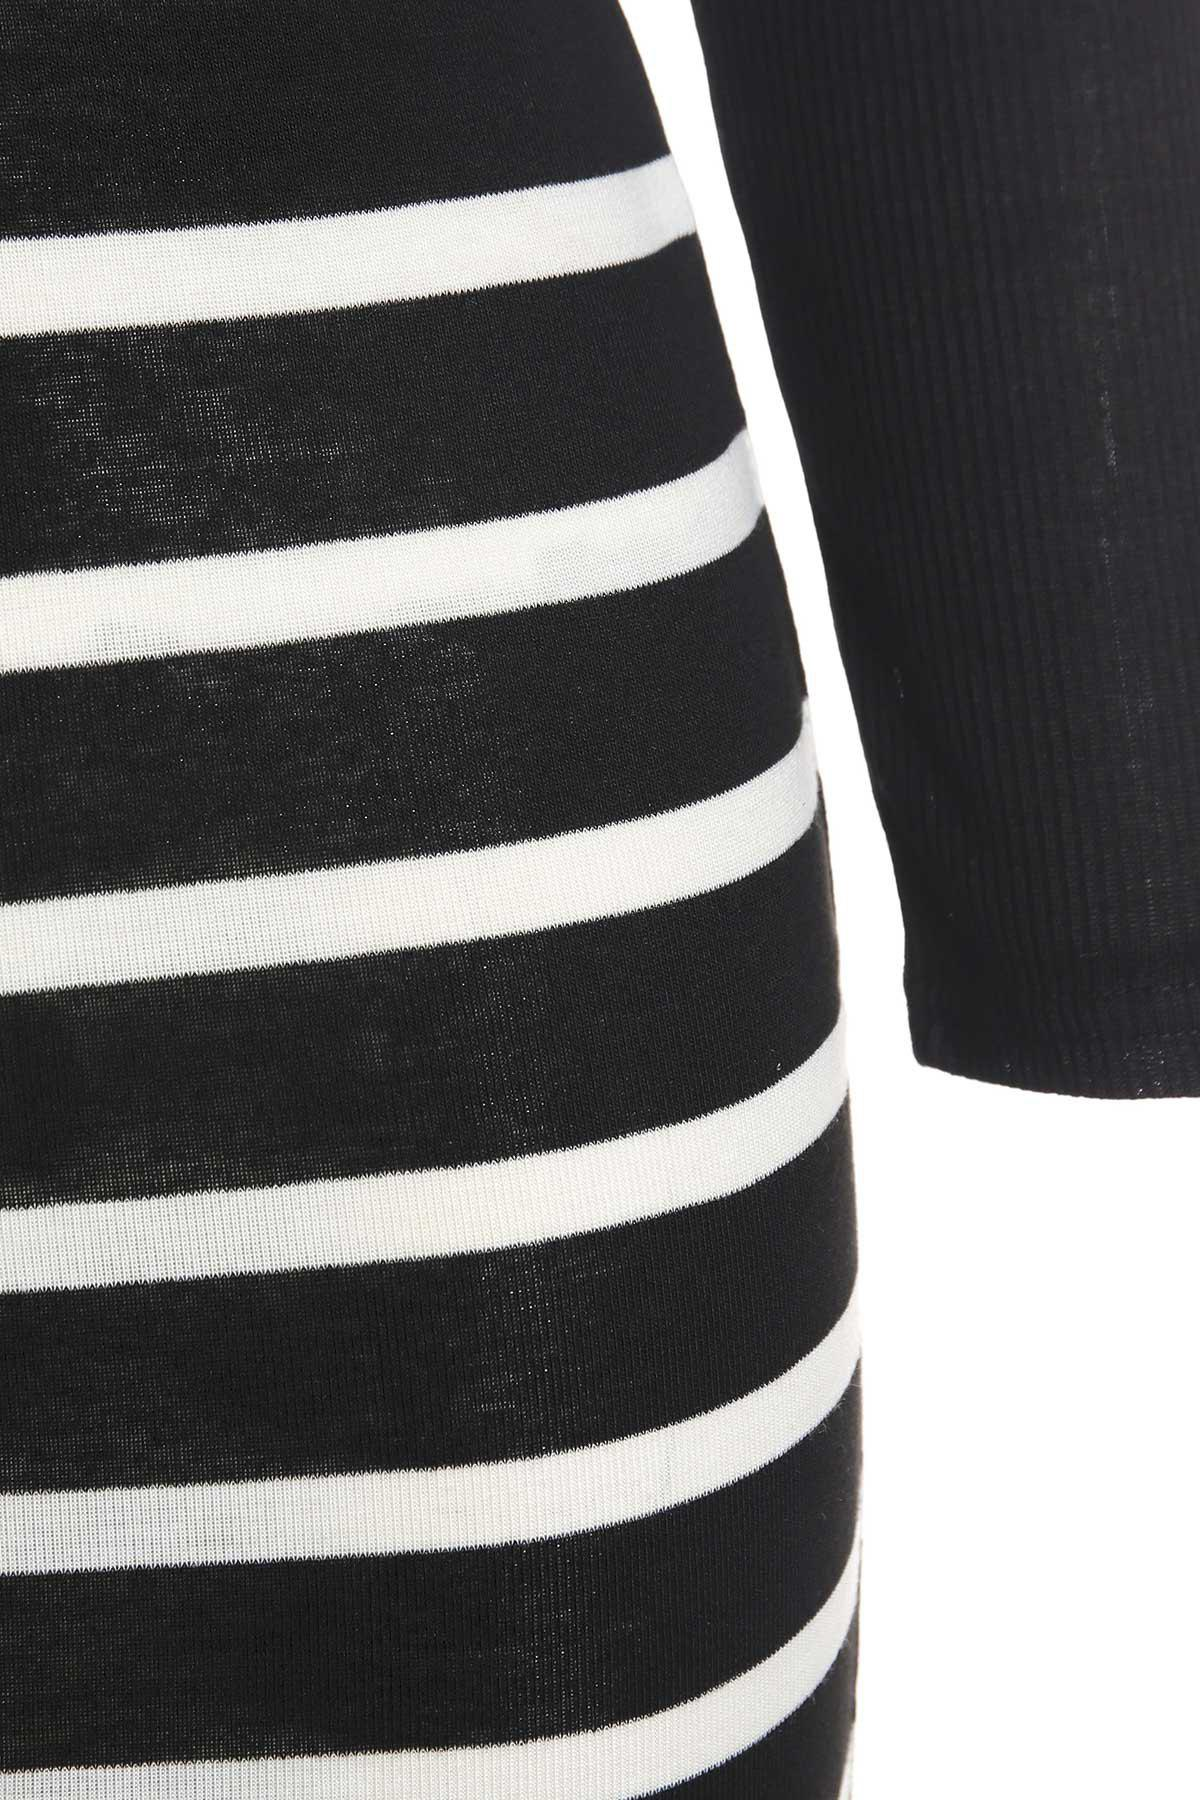 Sexy Style Round Neck Solid Color Long Sleeve Crop Top + Stripe Skirt For Women - BLACK L